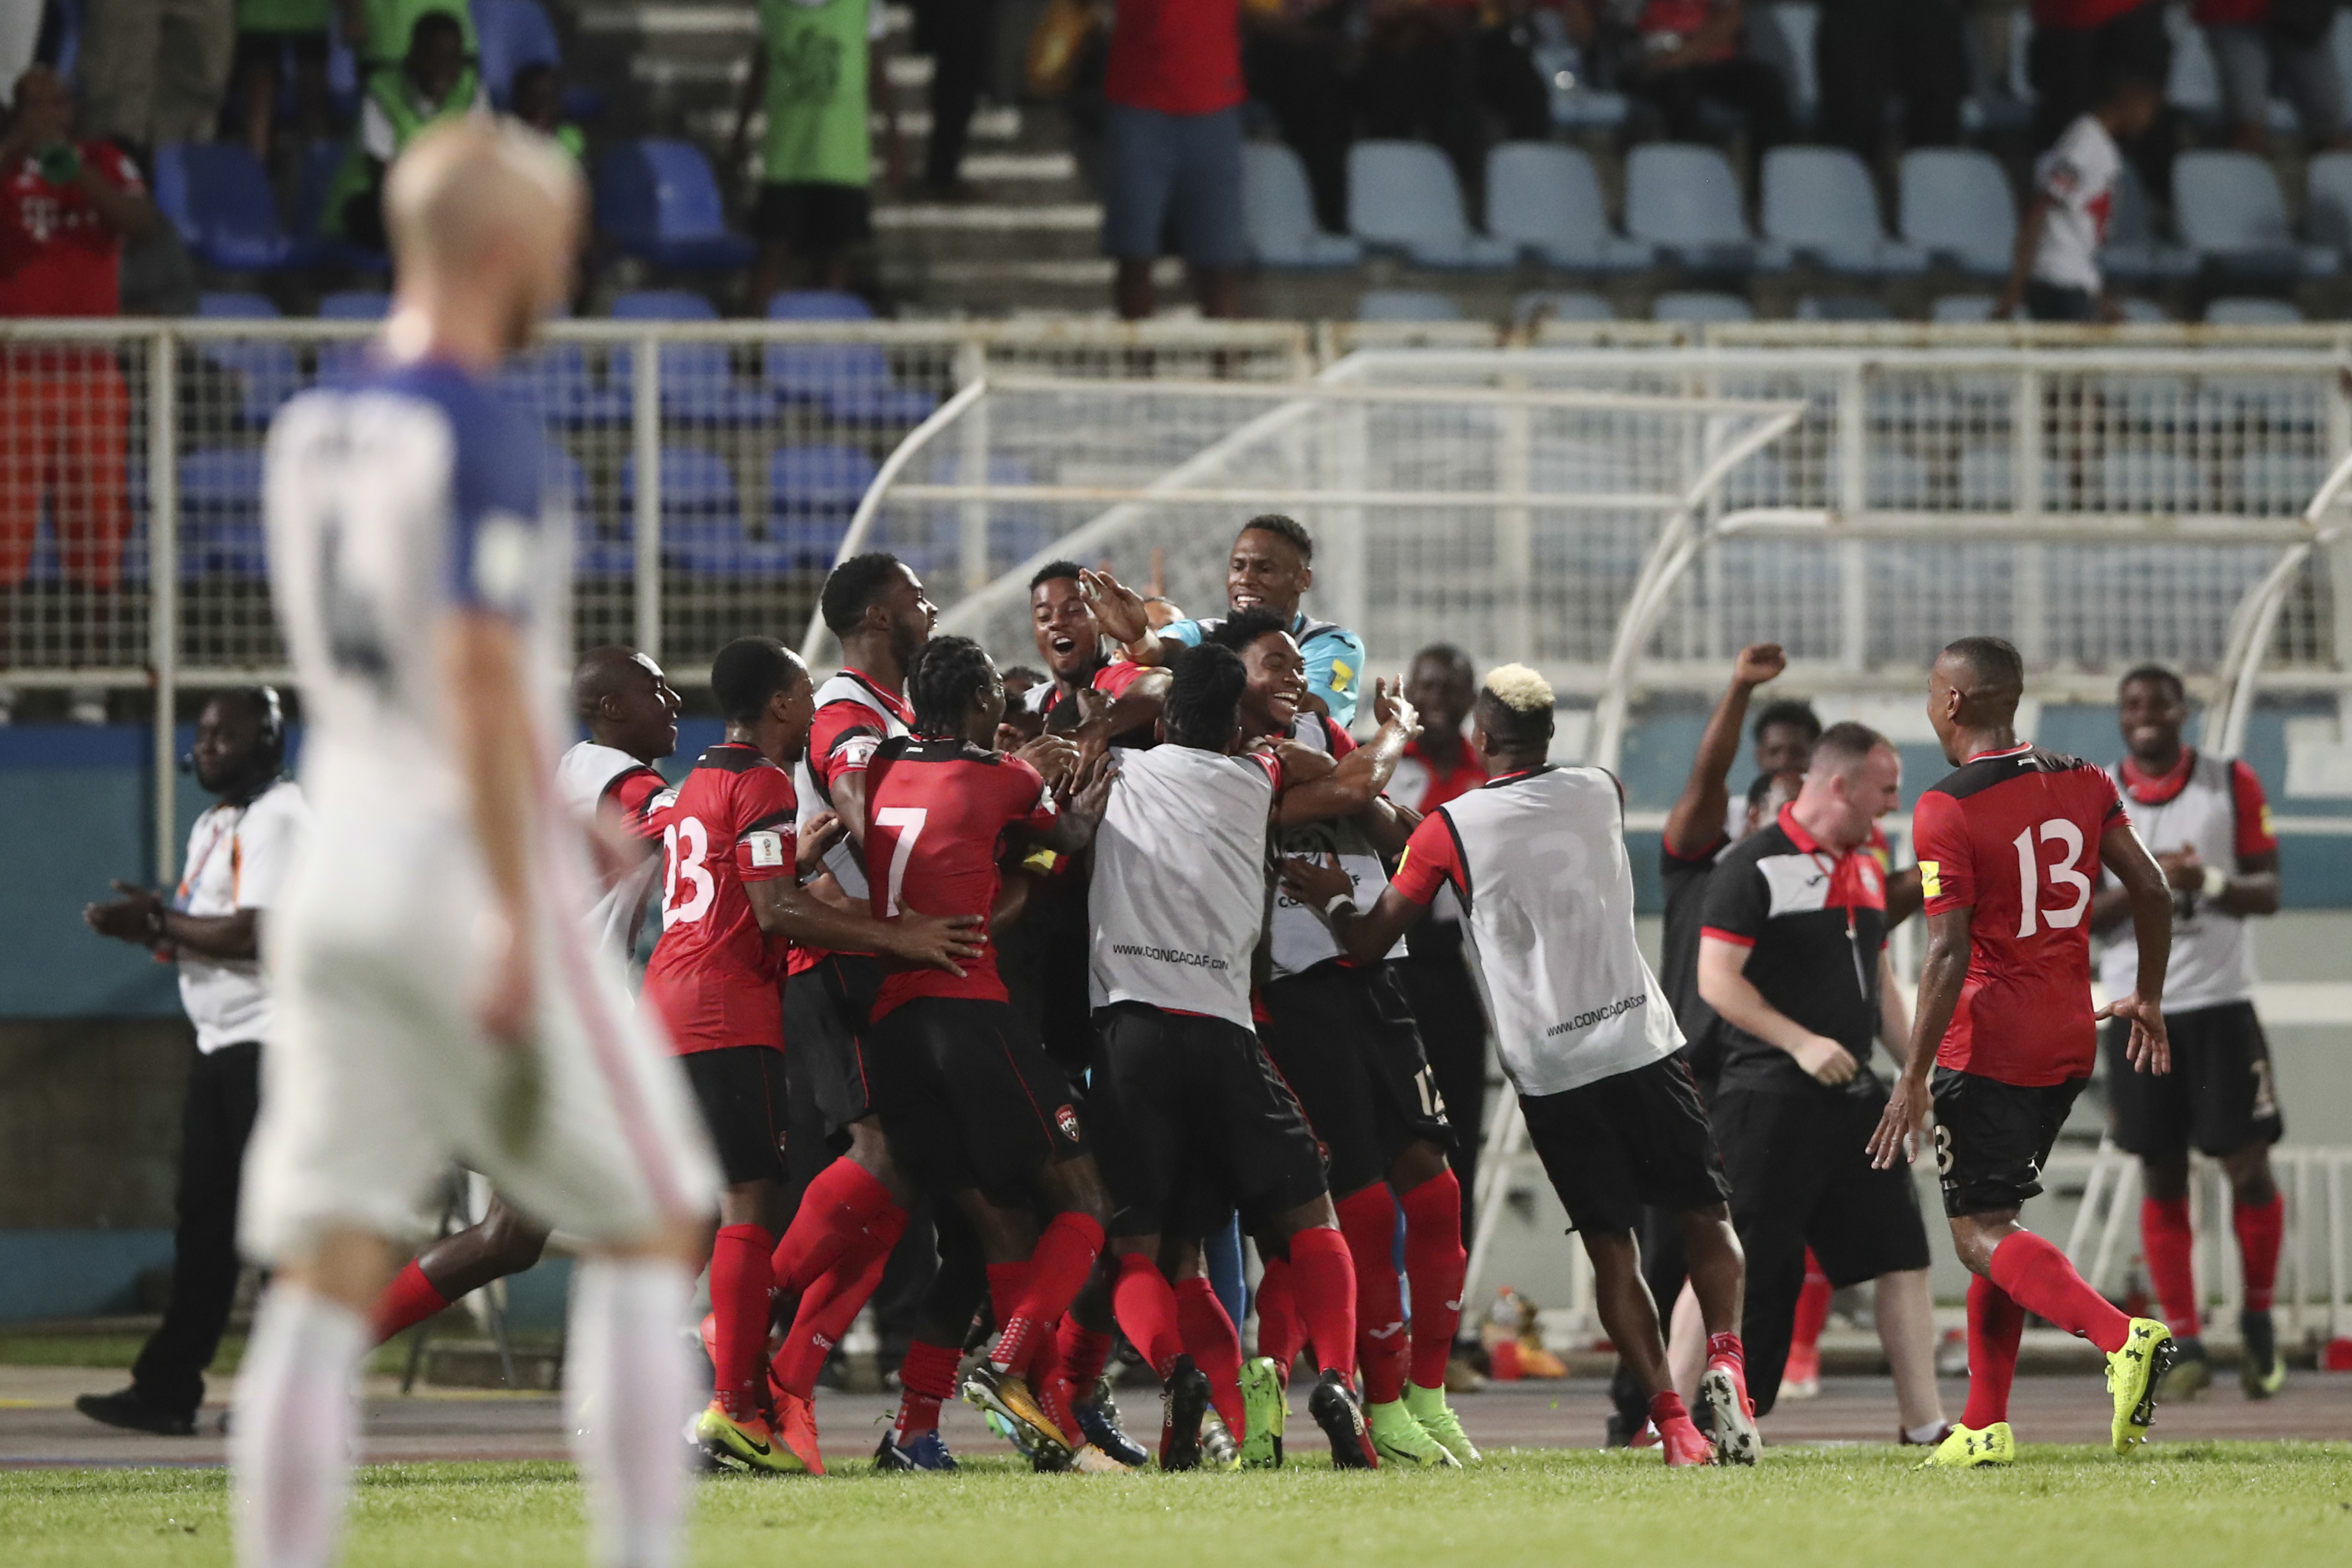 T&T celebrates Alvin Jones stunning goal to make it 2-0 vs USA during Russia 2018 FIFA World Cup Qualifier match at the Ato Boldon Stadium, Couva. PHOTO BY CA-Images